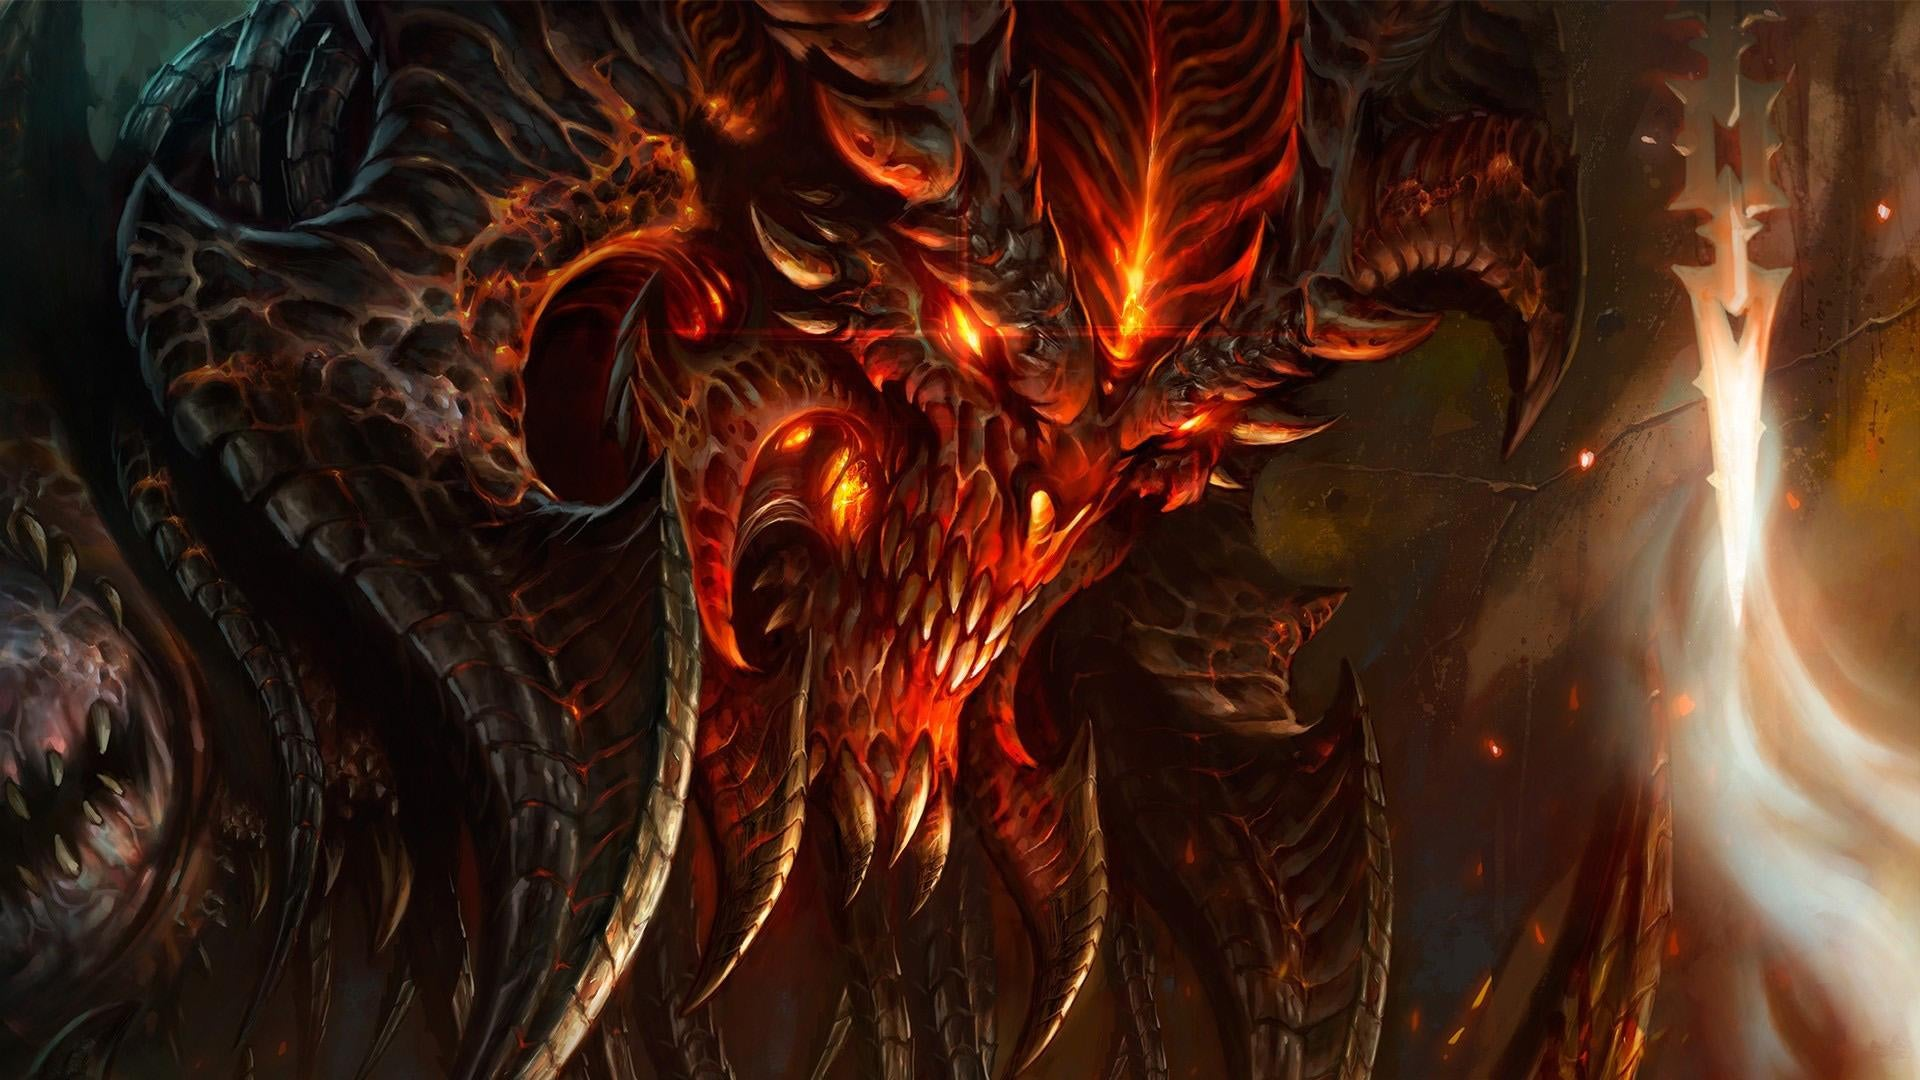 The Diablo 3 Switch Port Took 9 Months